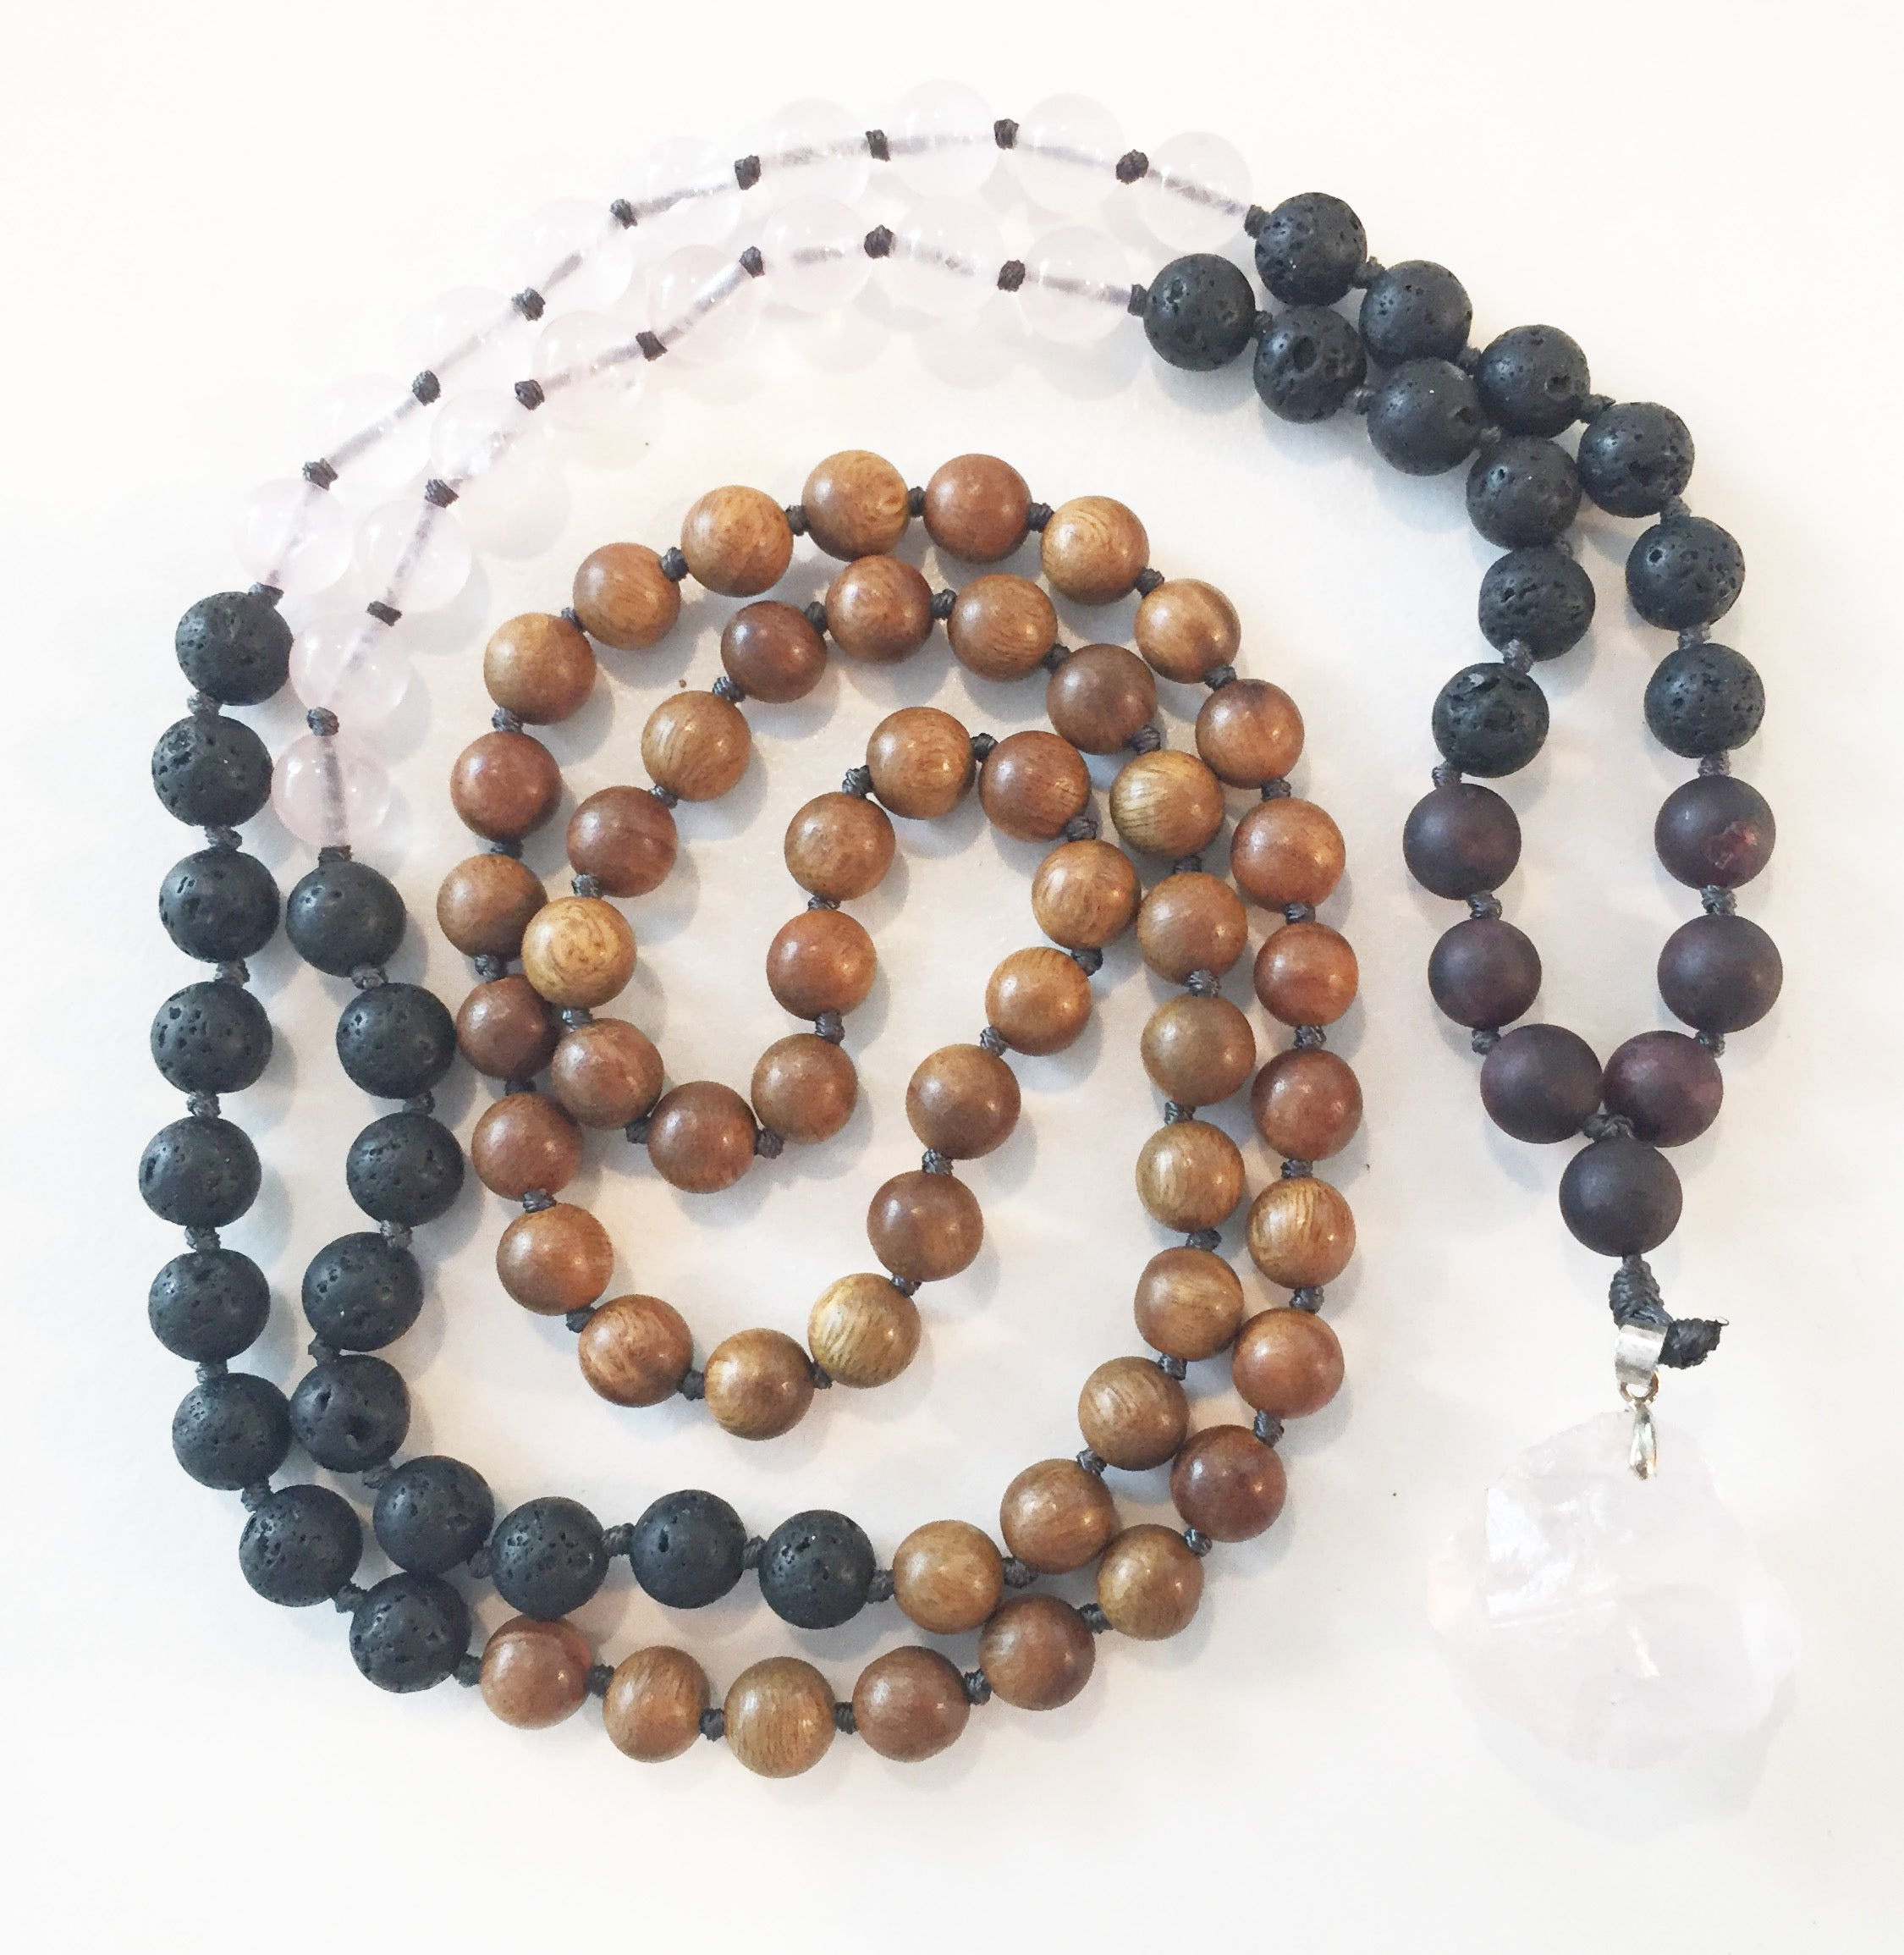 8mm Green Sandalwood & Rose Quartz 108 Knotted Mala Necklace with Crystal Pendant